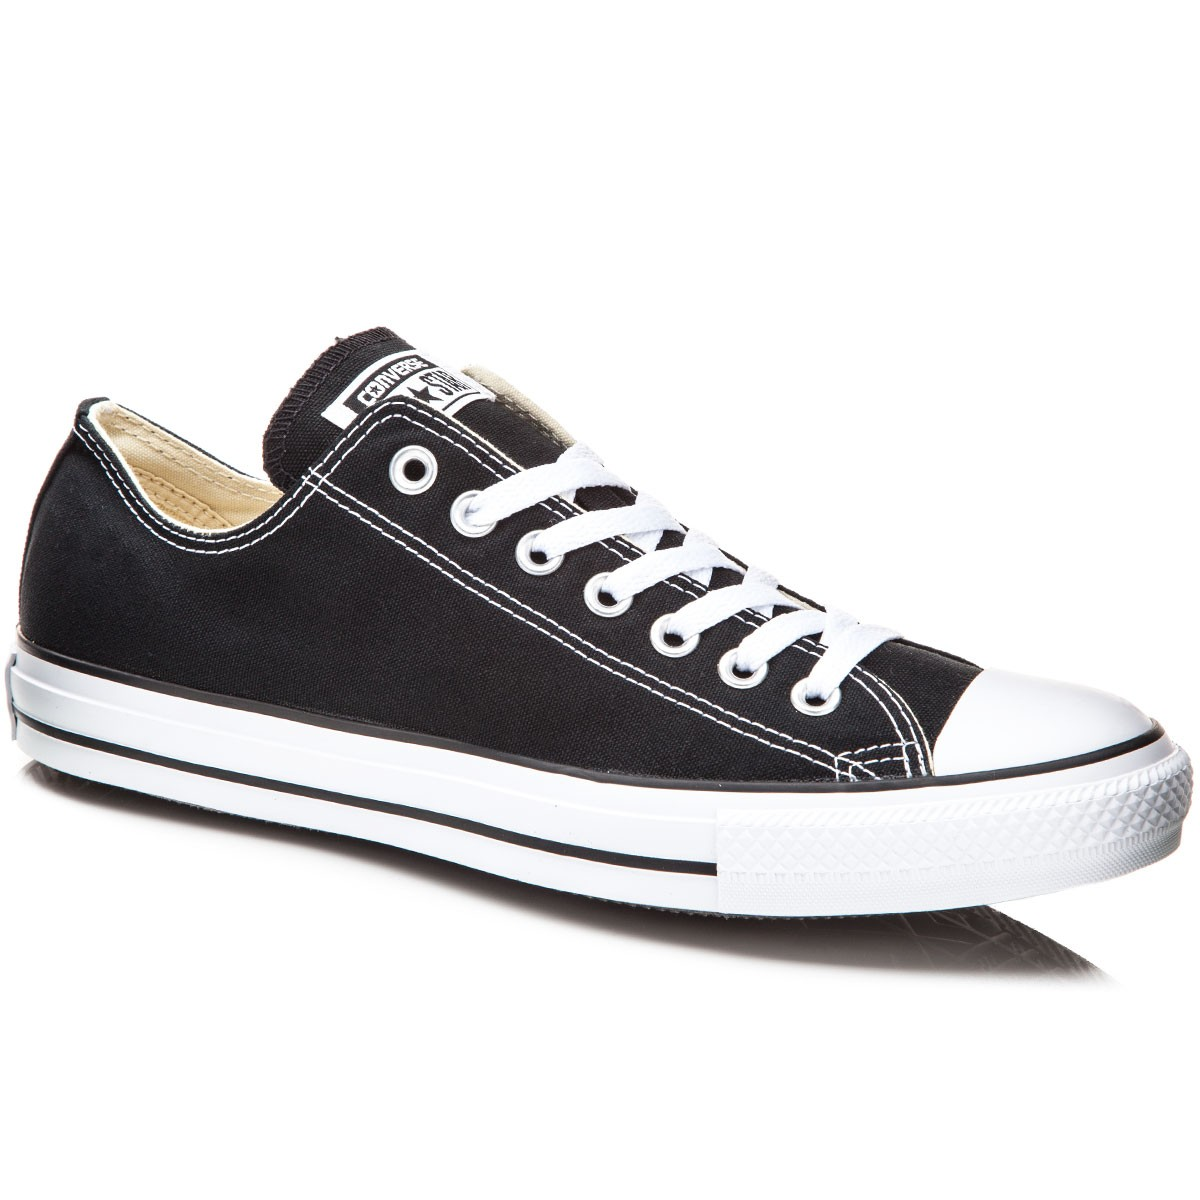 converse chuck taylor all star lo shoes. Black Bedroom Furniture Sets. Home Design Ideas